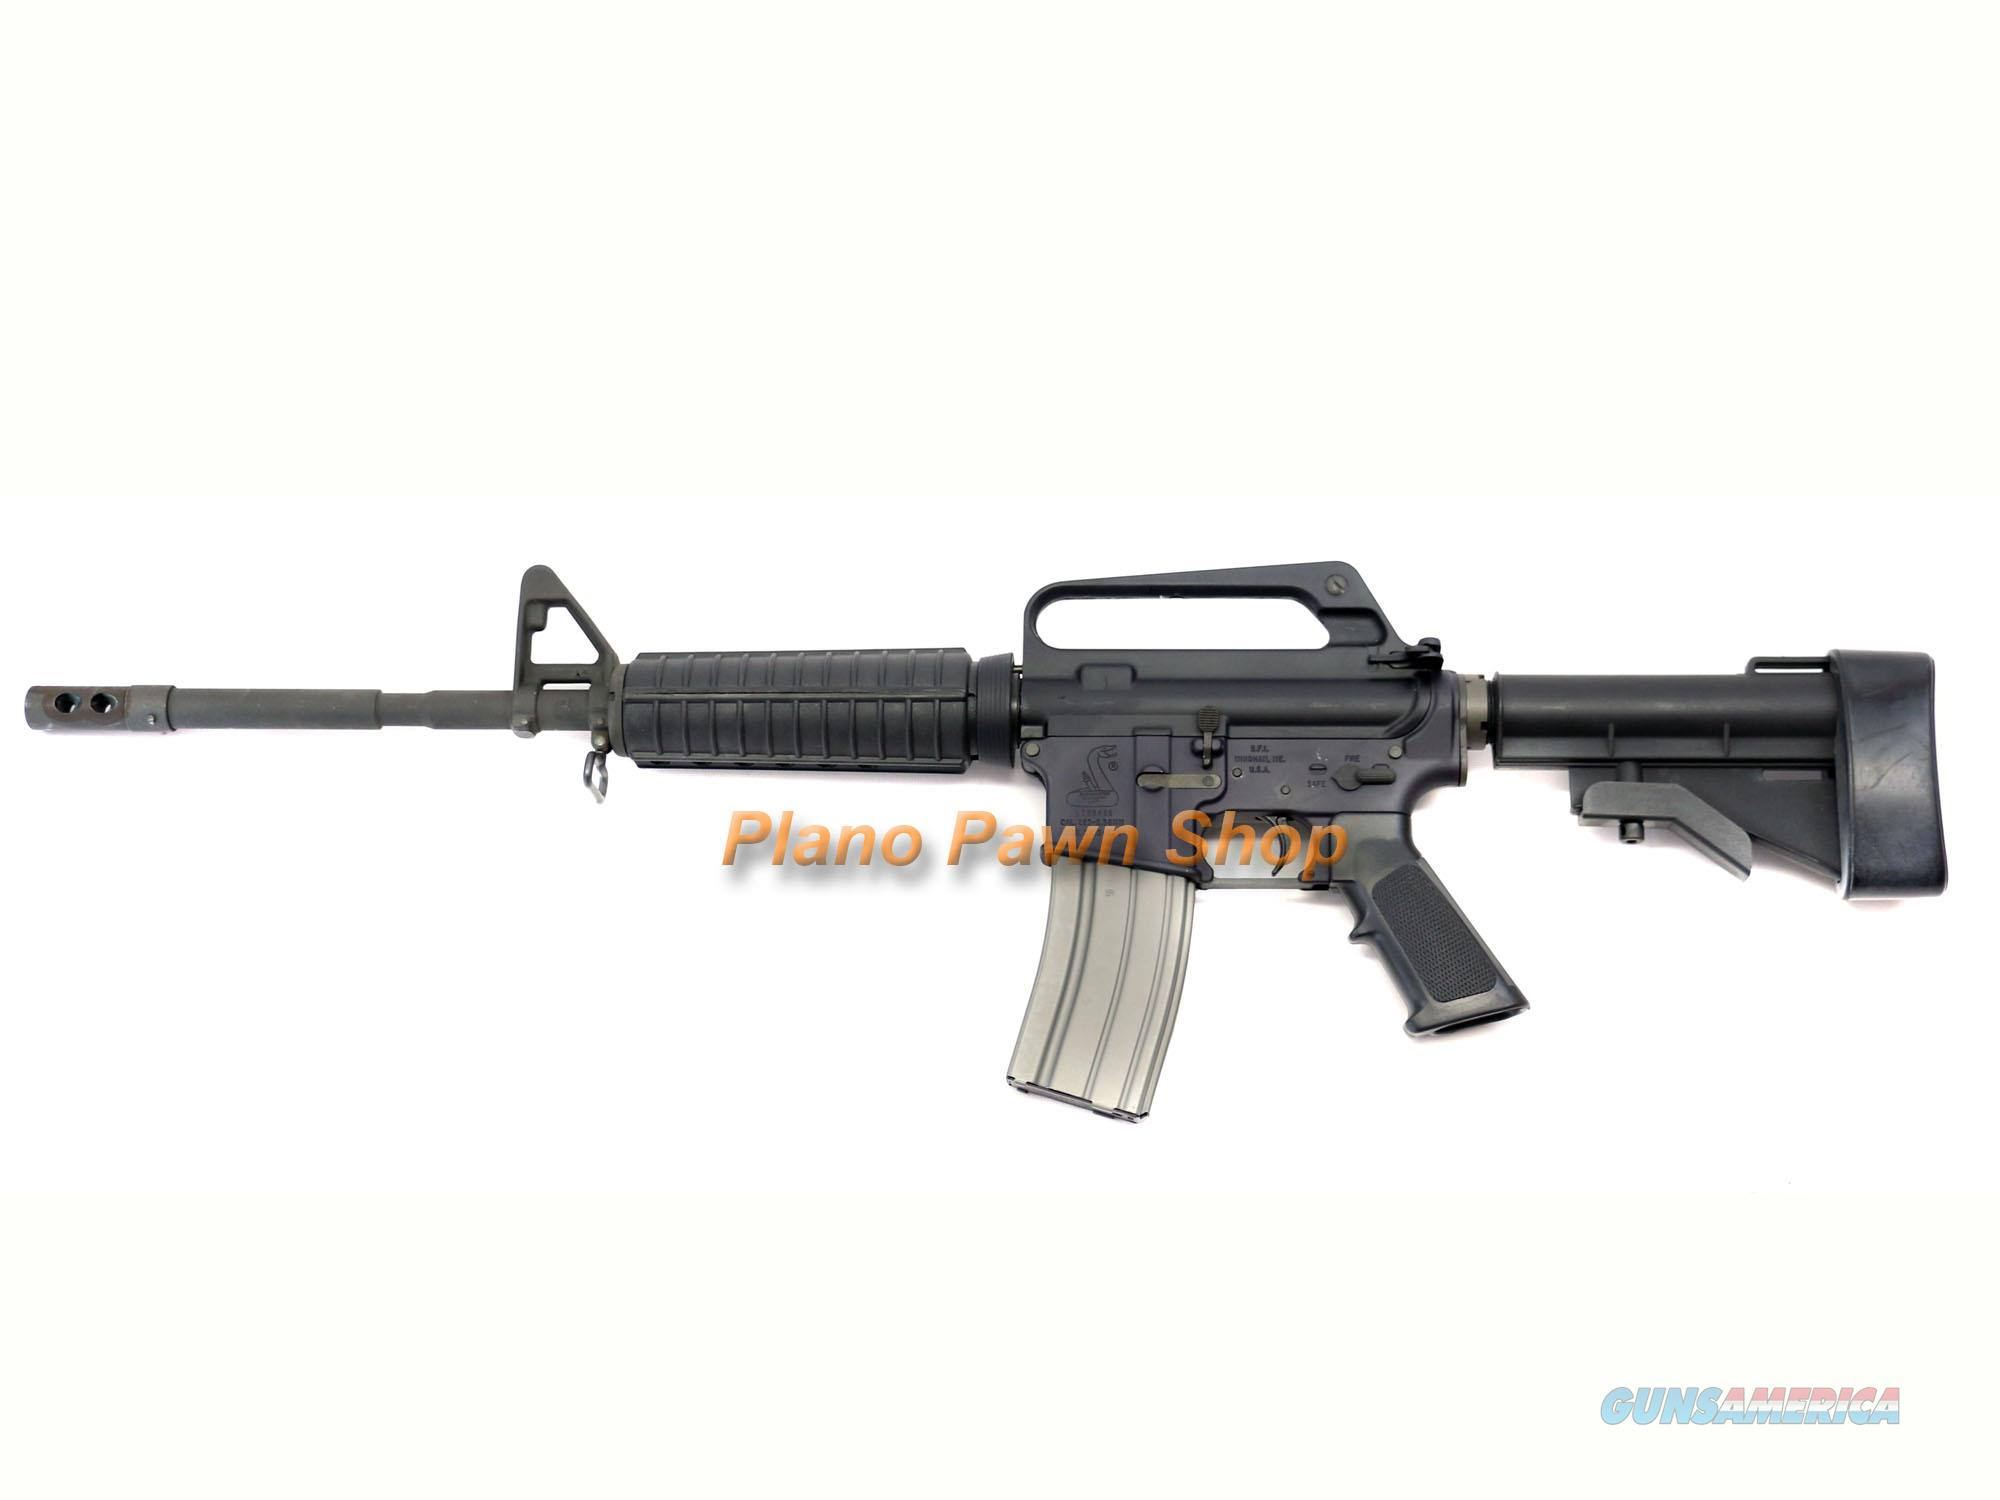 Bushmaster Model XM15 E2S 5.56MM AR15 With 1 Magazine